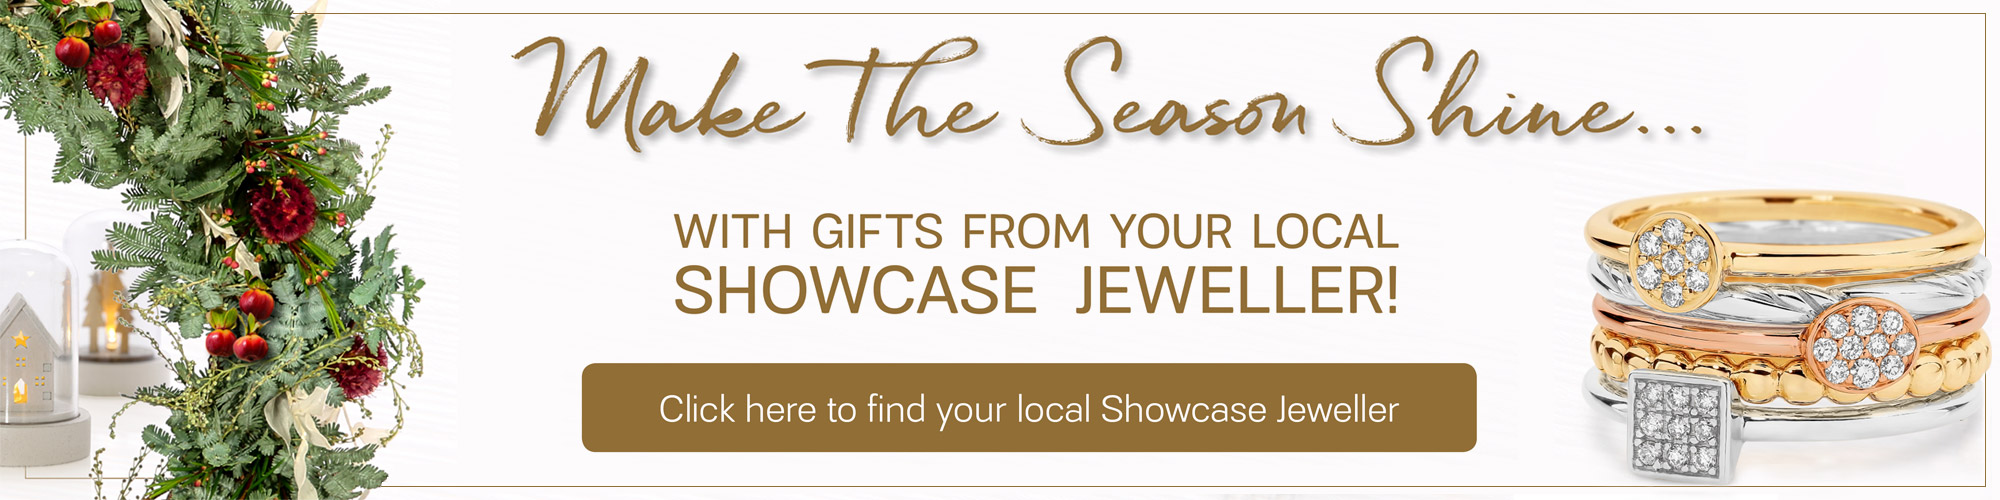 Shop Christmas Gifts From Local Showcase Jeweller